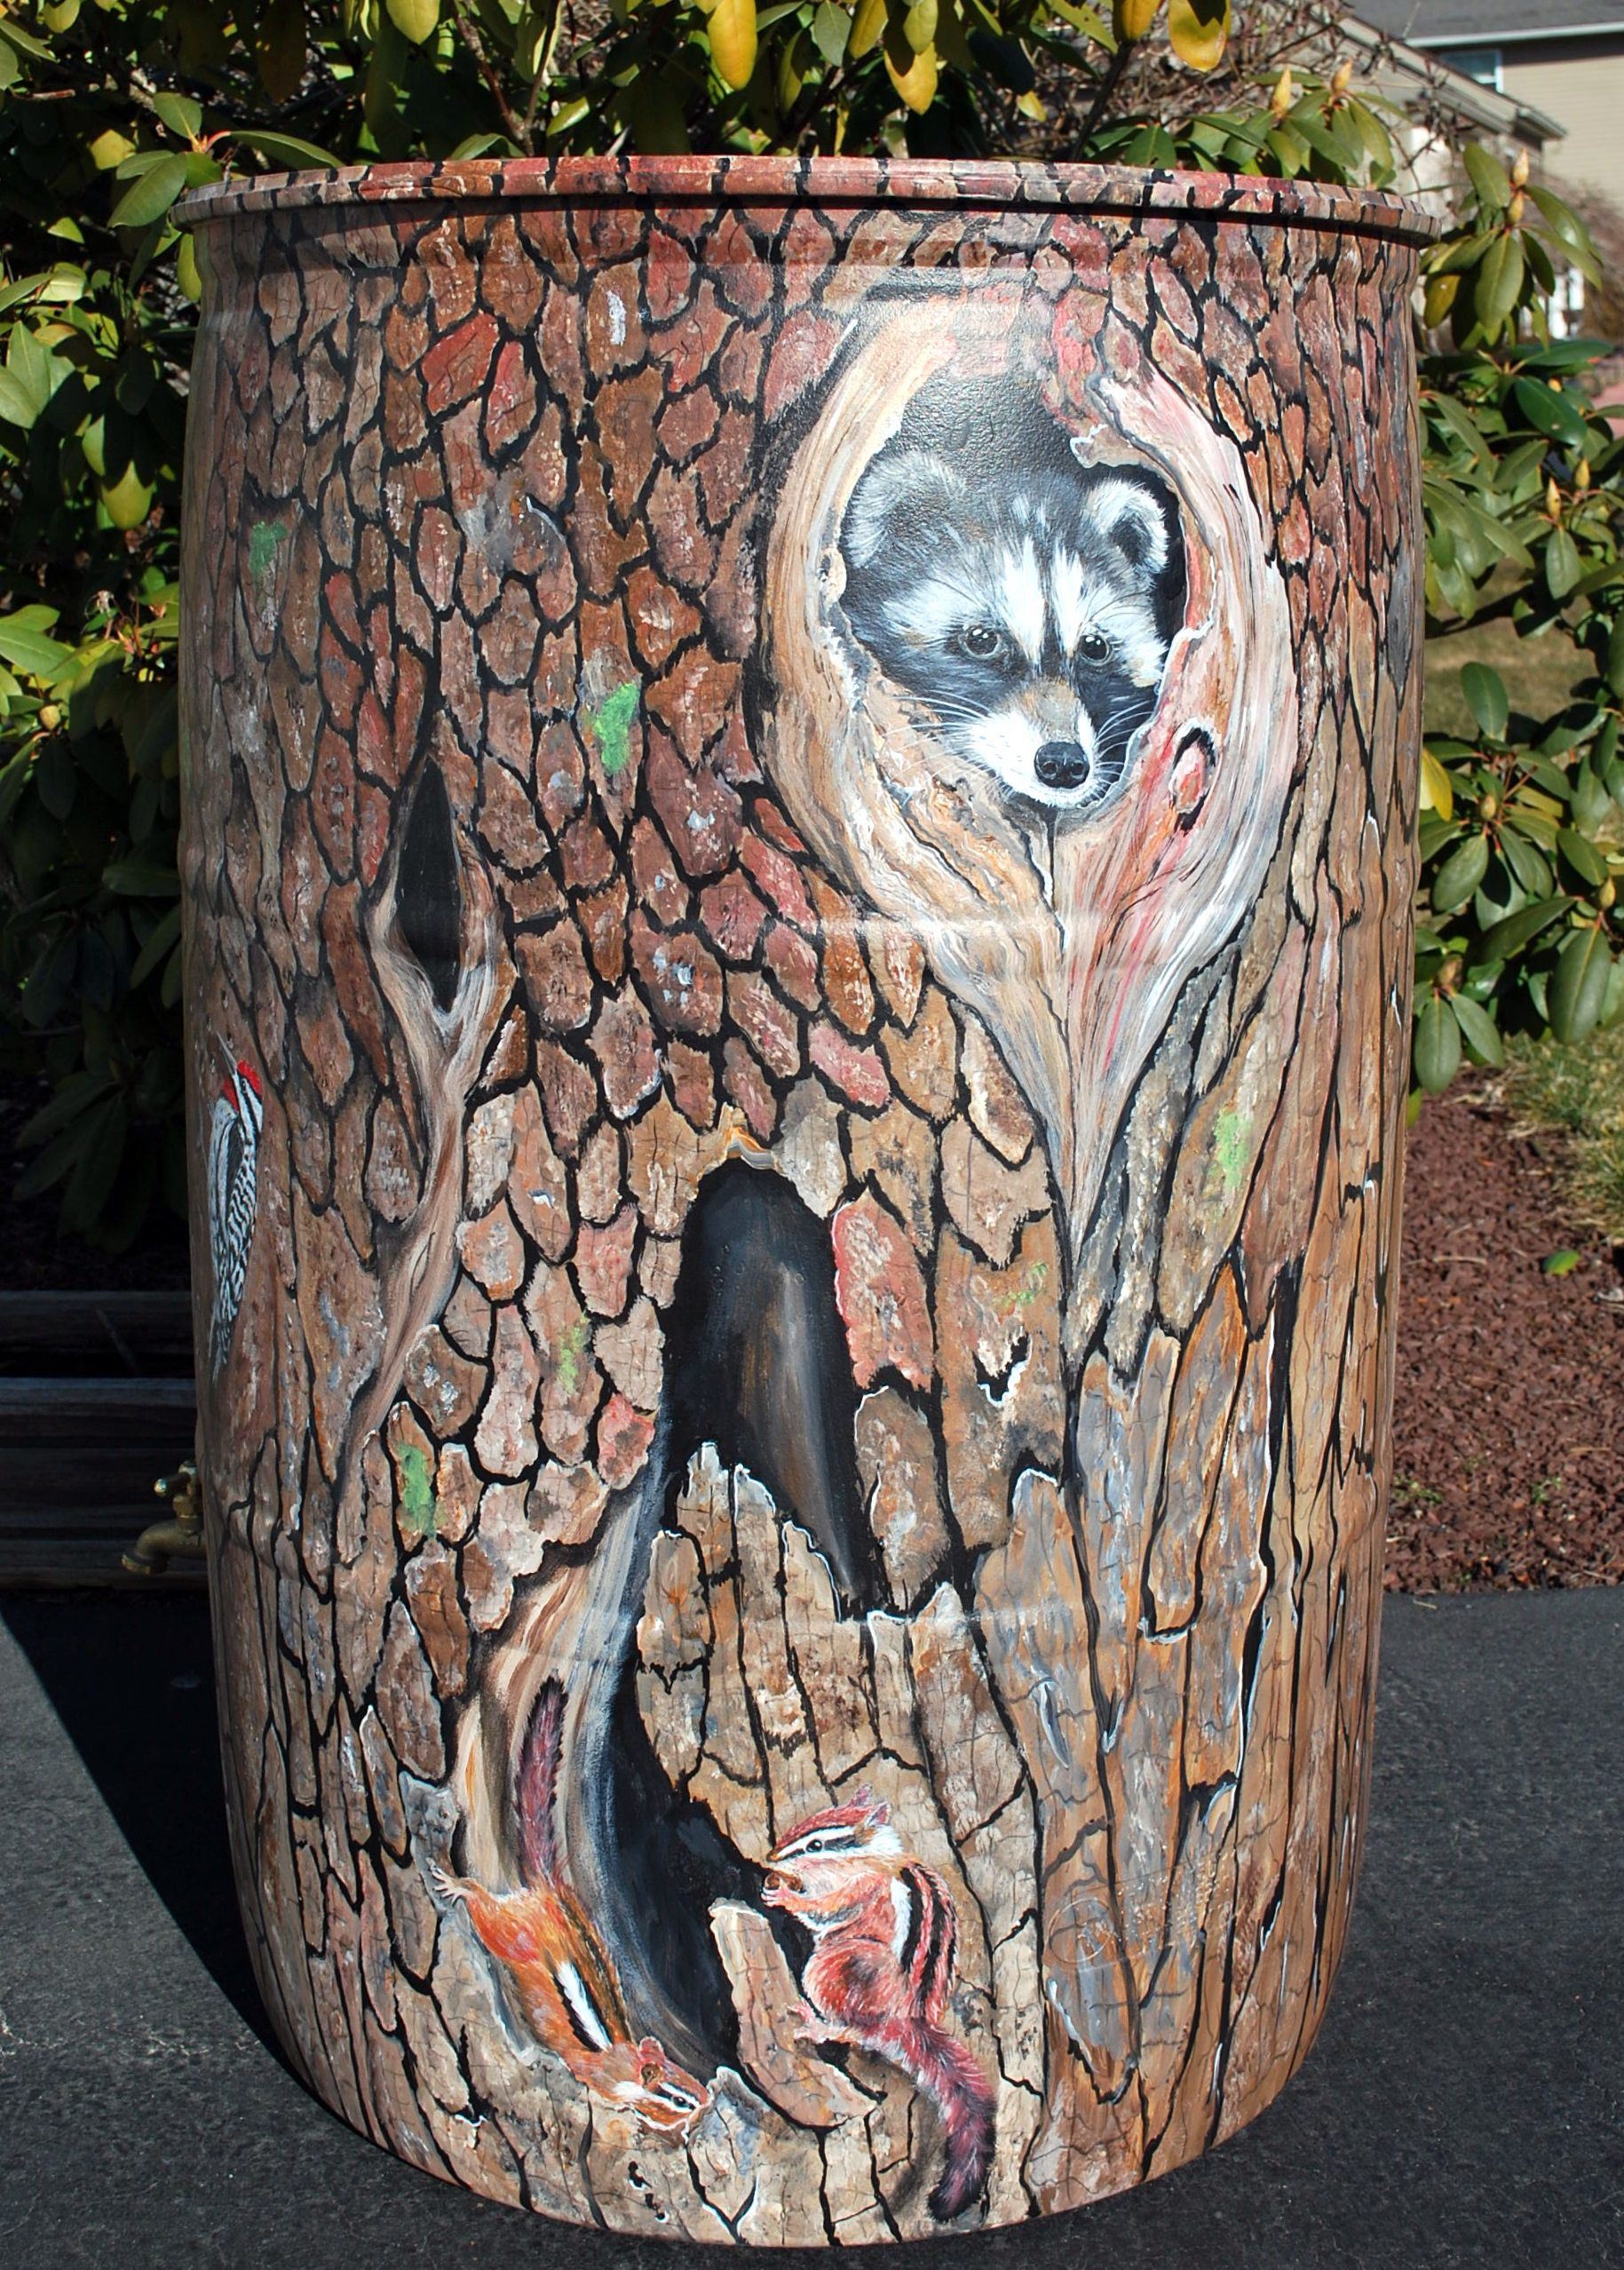 50 gallon rain barrel painted as a tree trunk with birds